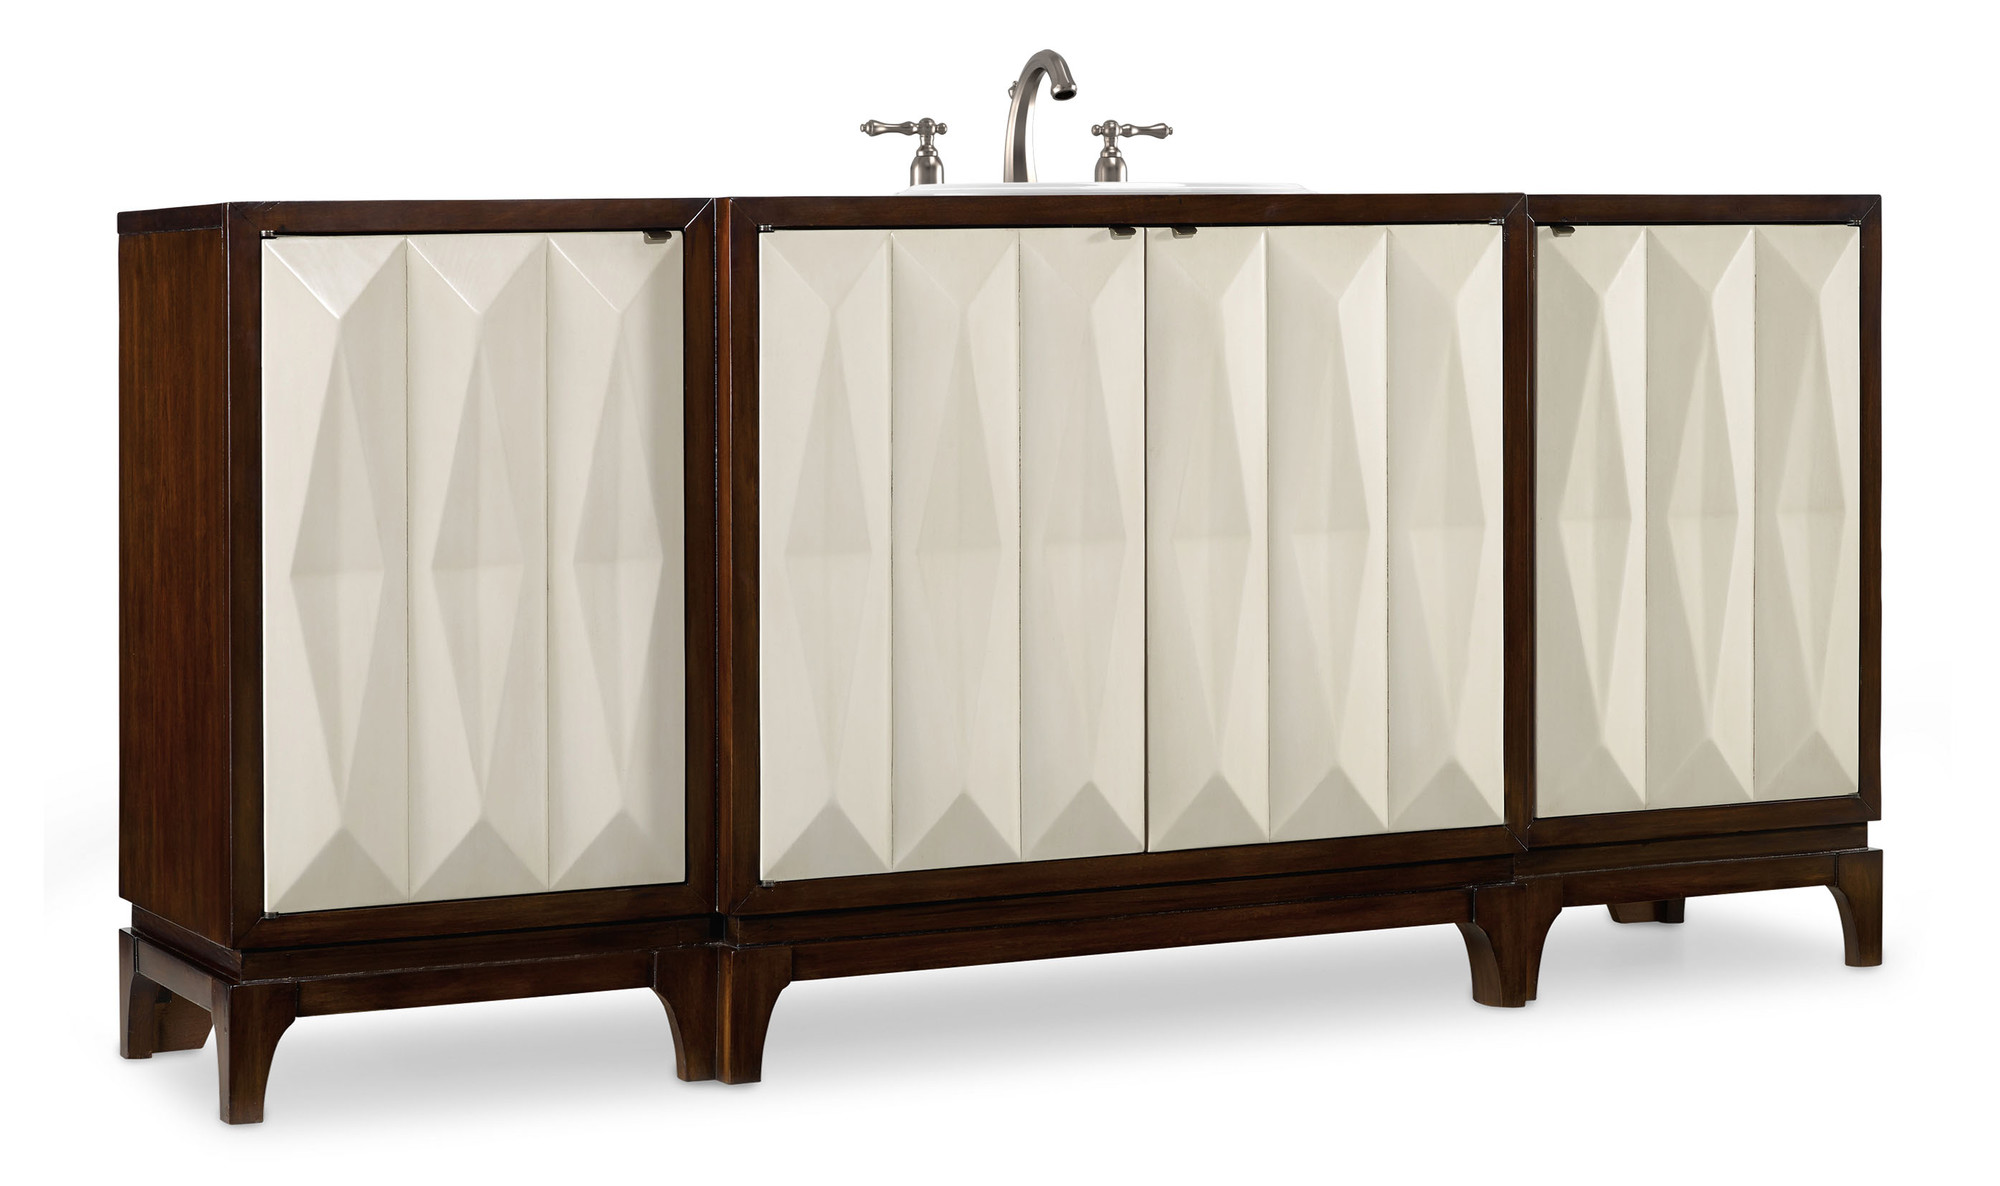 Slaton 78 inch Hall Chest Bathroom Vanity by Cole & Co. Designer Series